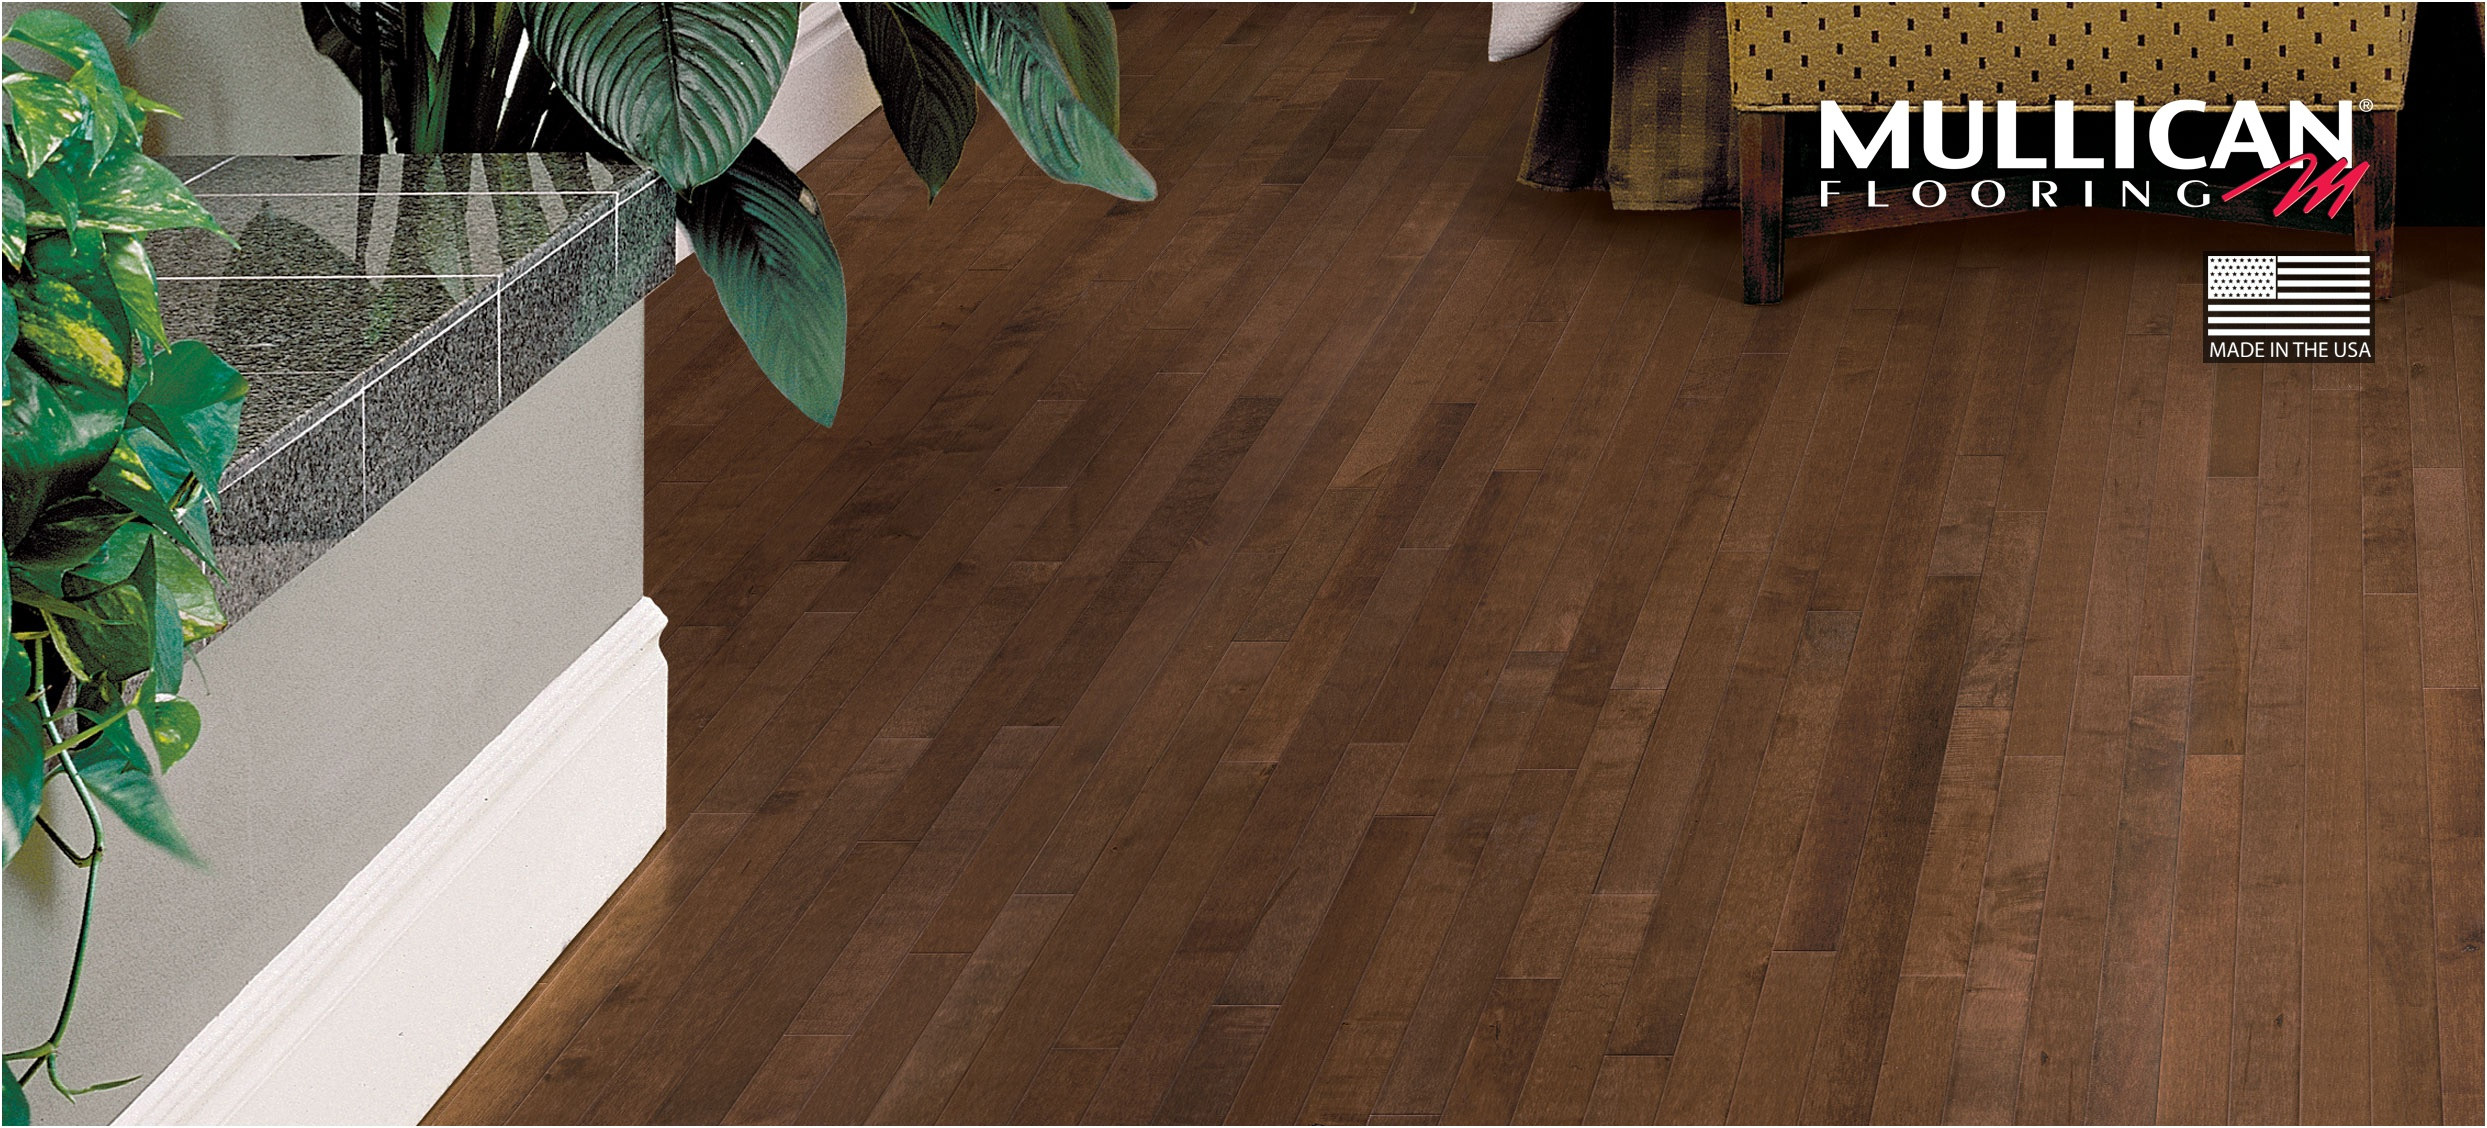 bruce hardwood floors made in usa of how to install prefinished solid hardwood flooring stock hardwood within how to install prefinished solid hardwood flooring galerie mullican flooring home of how to install prefinished